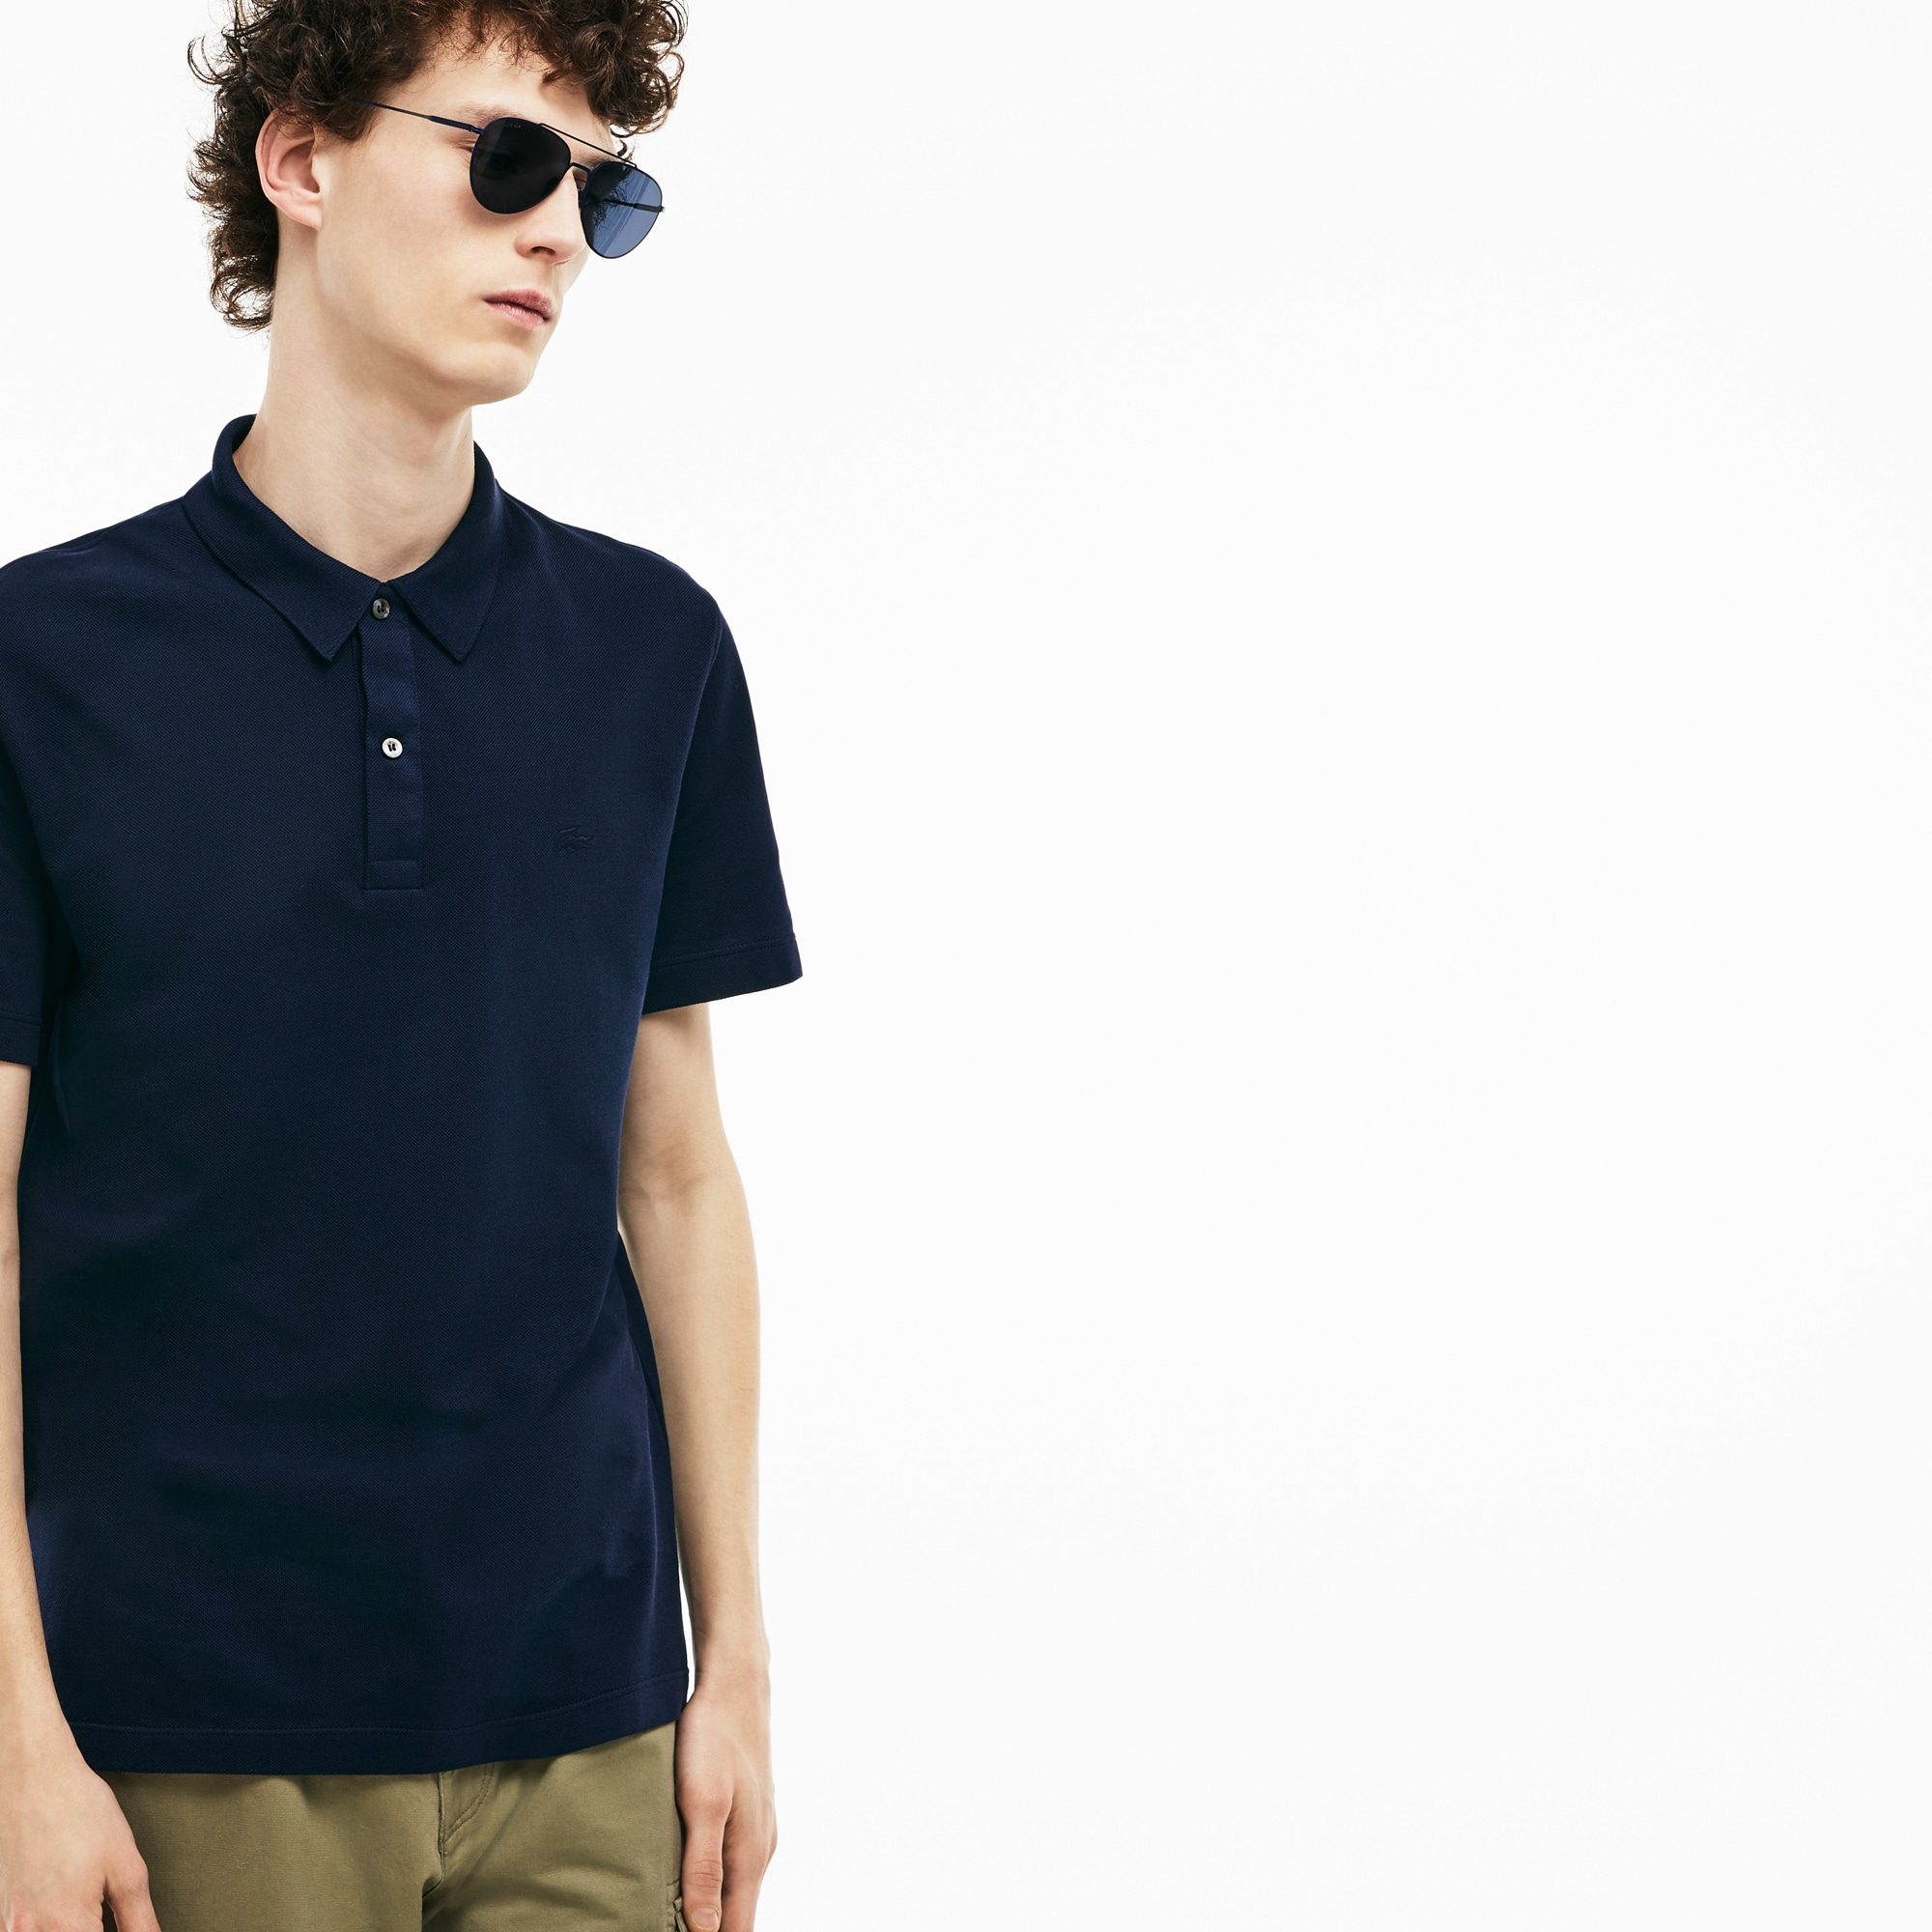 Men's Lacoste Slim Fit Unicolour Cotton Piqué Polo Shirt